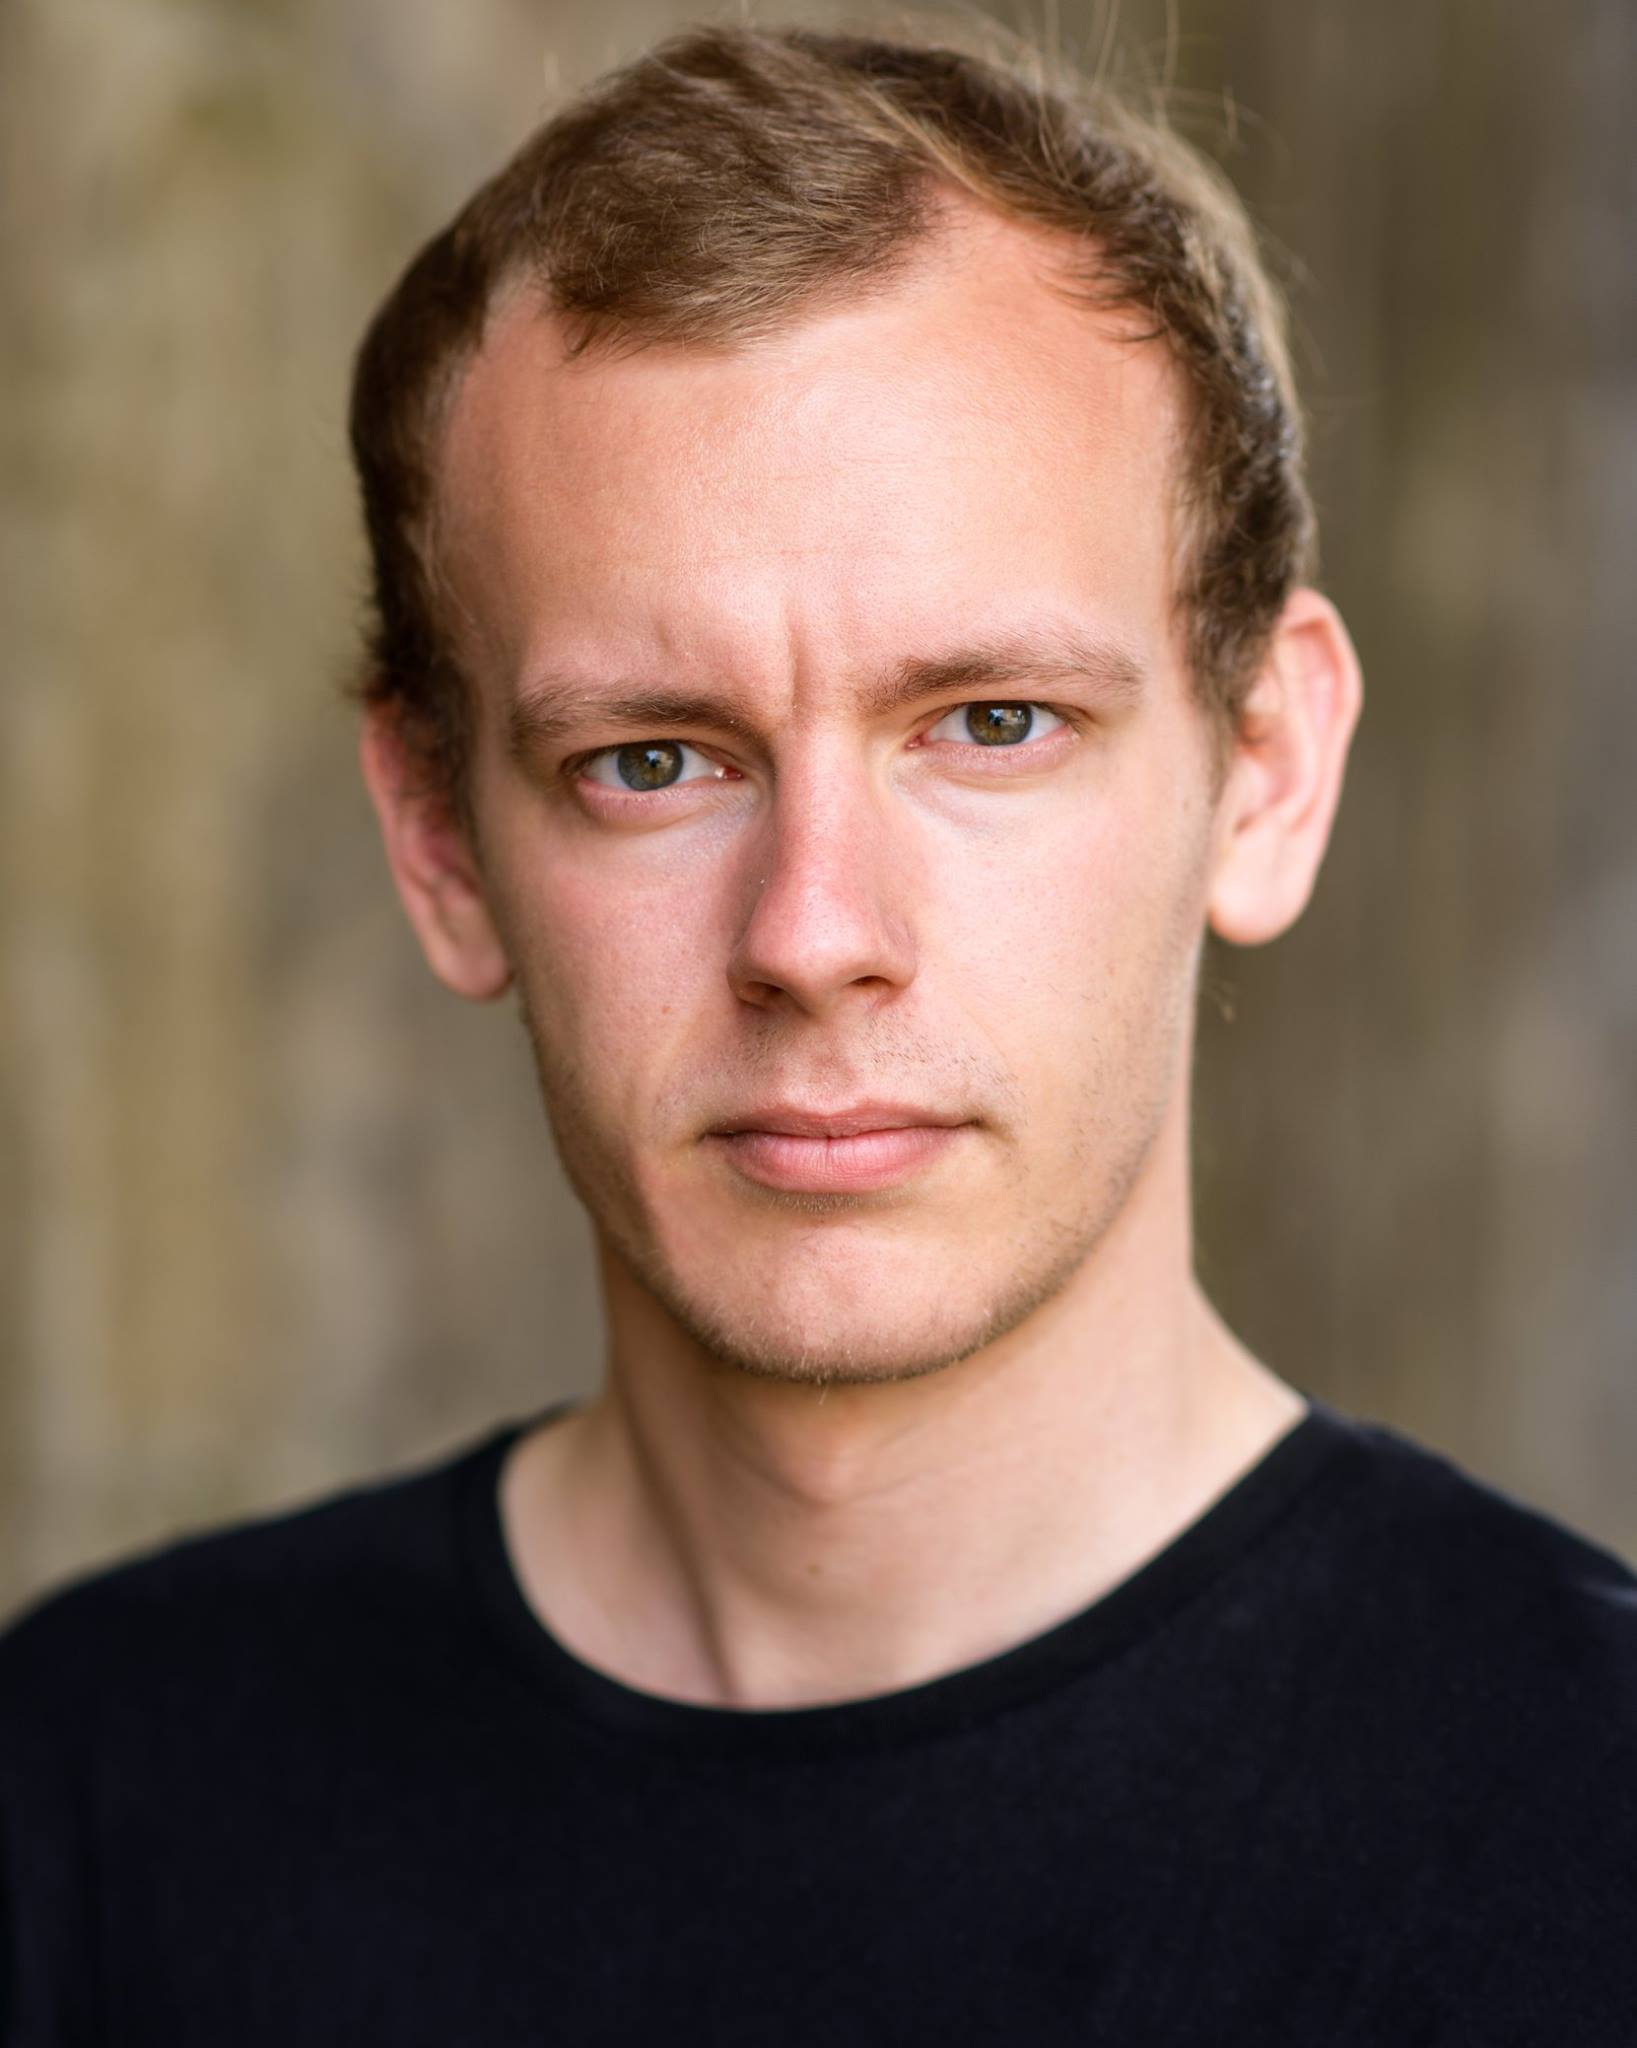 Ross Somerville  - Core Artist  Played  Rhys  in NWT's Toronto Fringe Festival production of  Kara Sevda . Ross also  composed the music  for the touring production of  Kara Sevda.